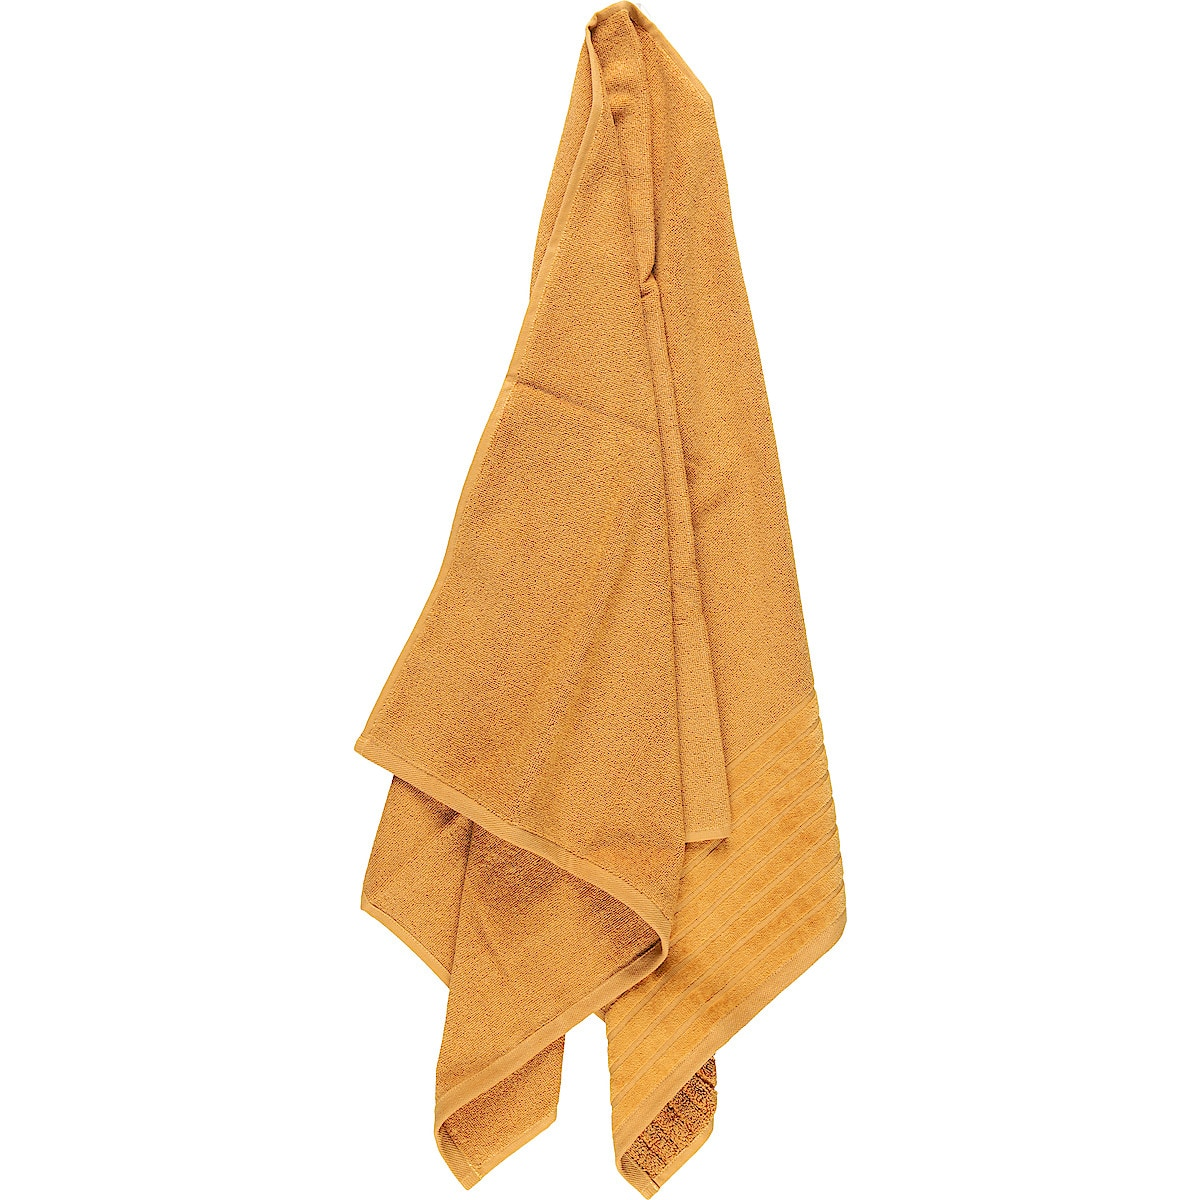 Yellow Bath Towel, 70 x 140 cm